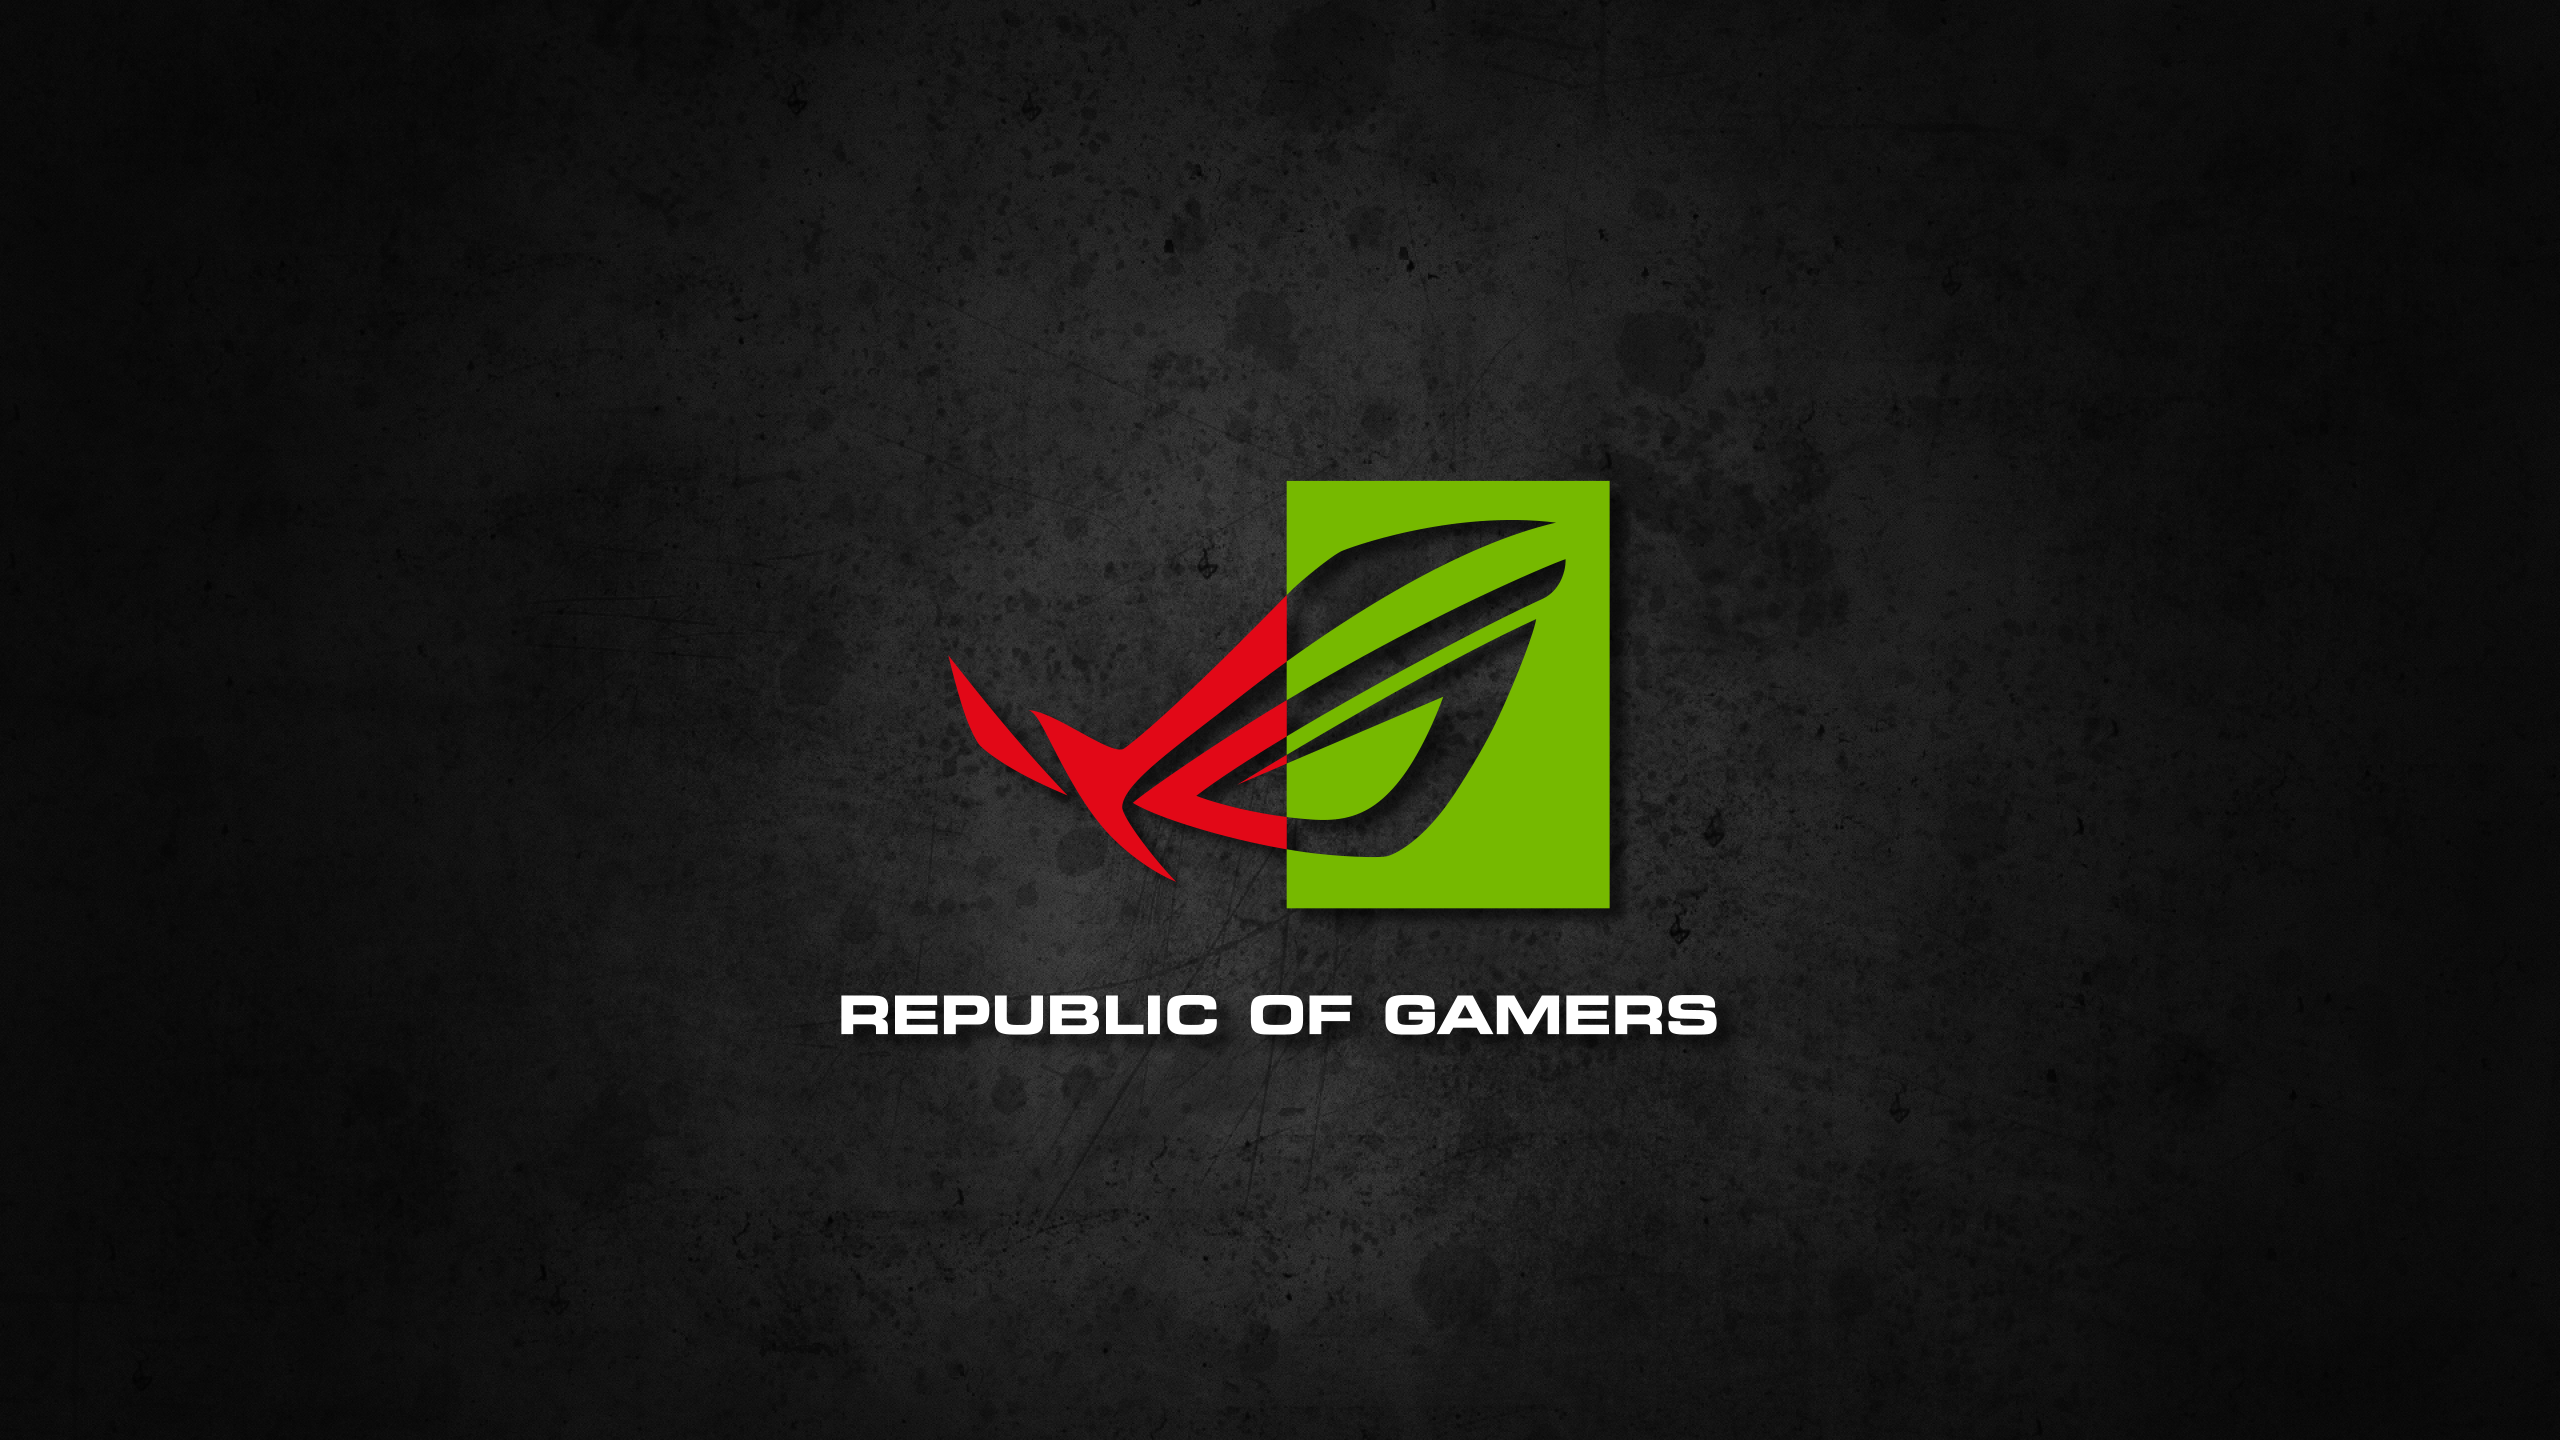 republic of gamers nvidia wallpaper by biosmanager on